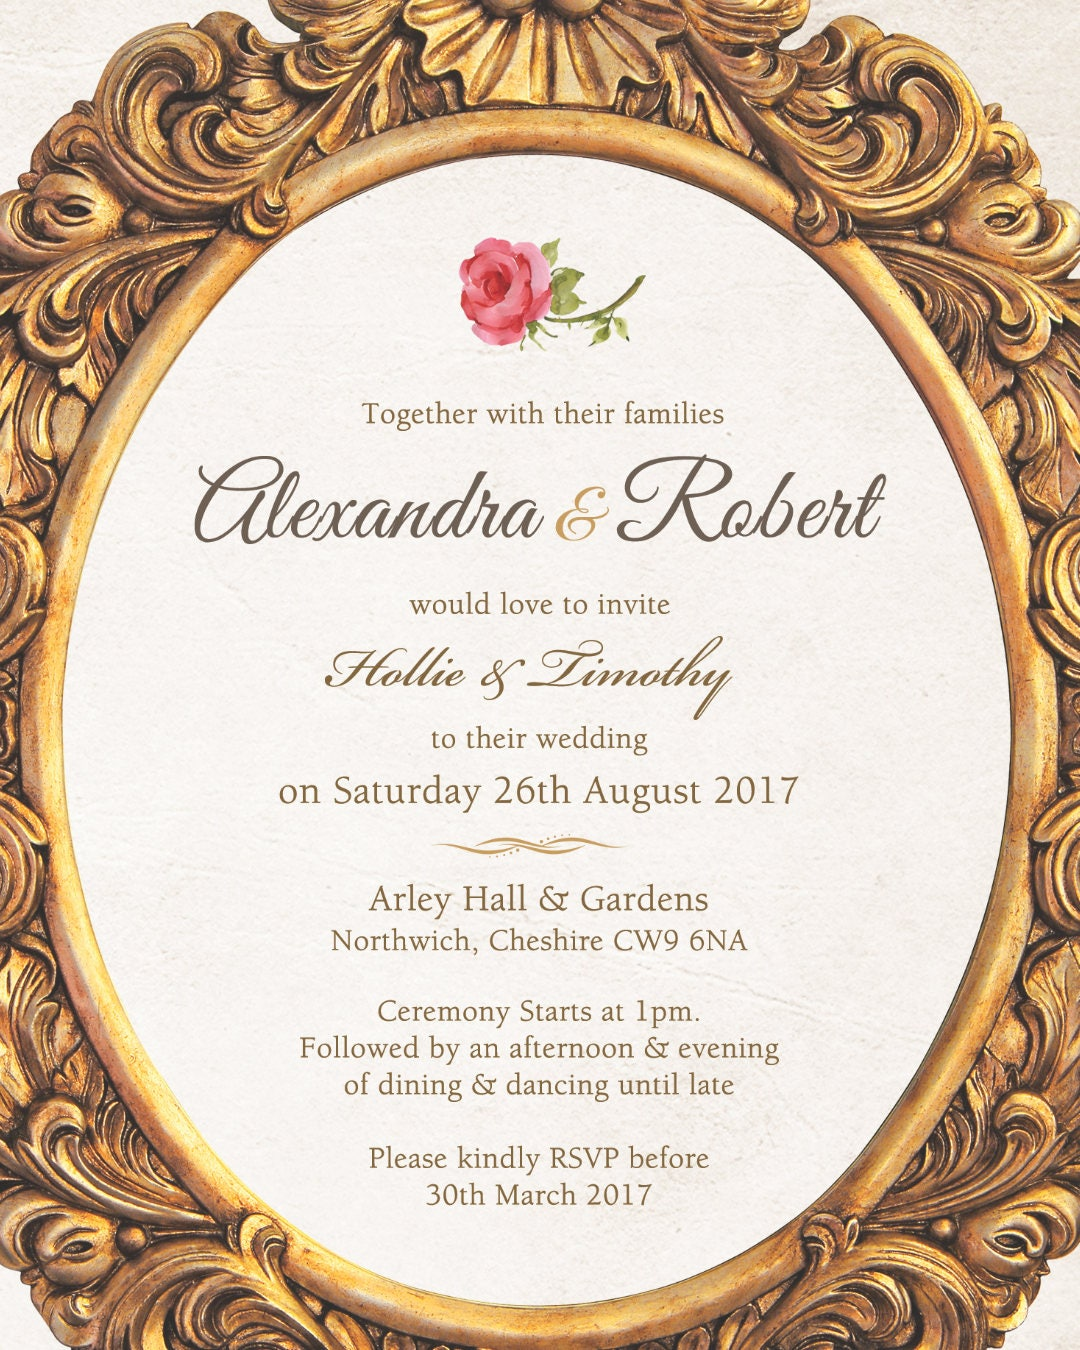 Printed Guest Names For Invitations Add On Item When